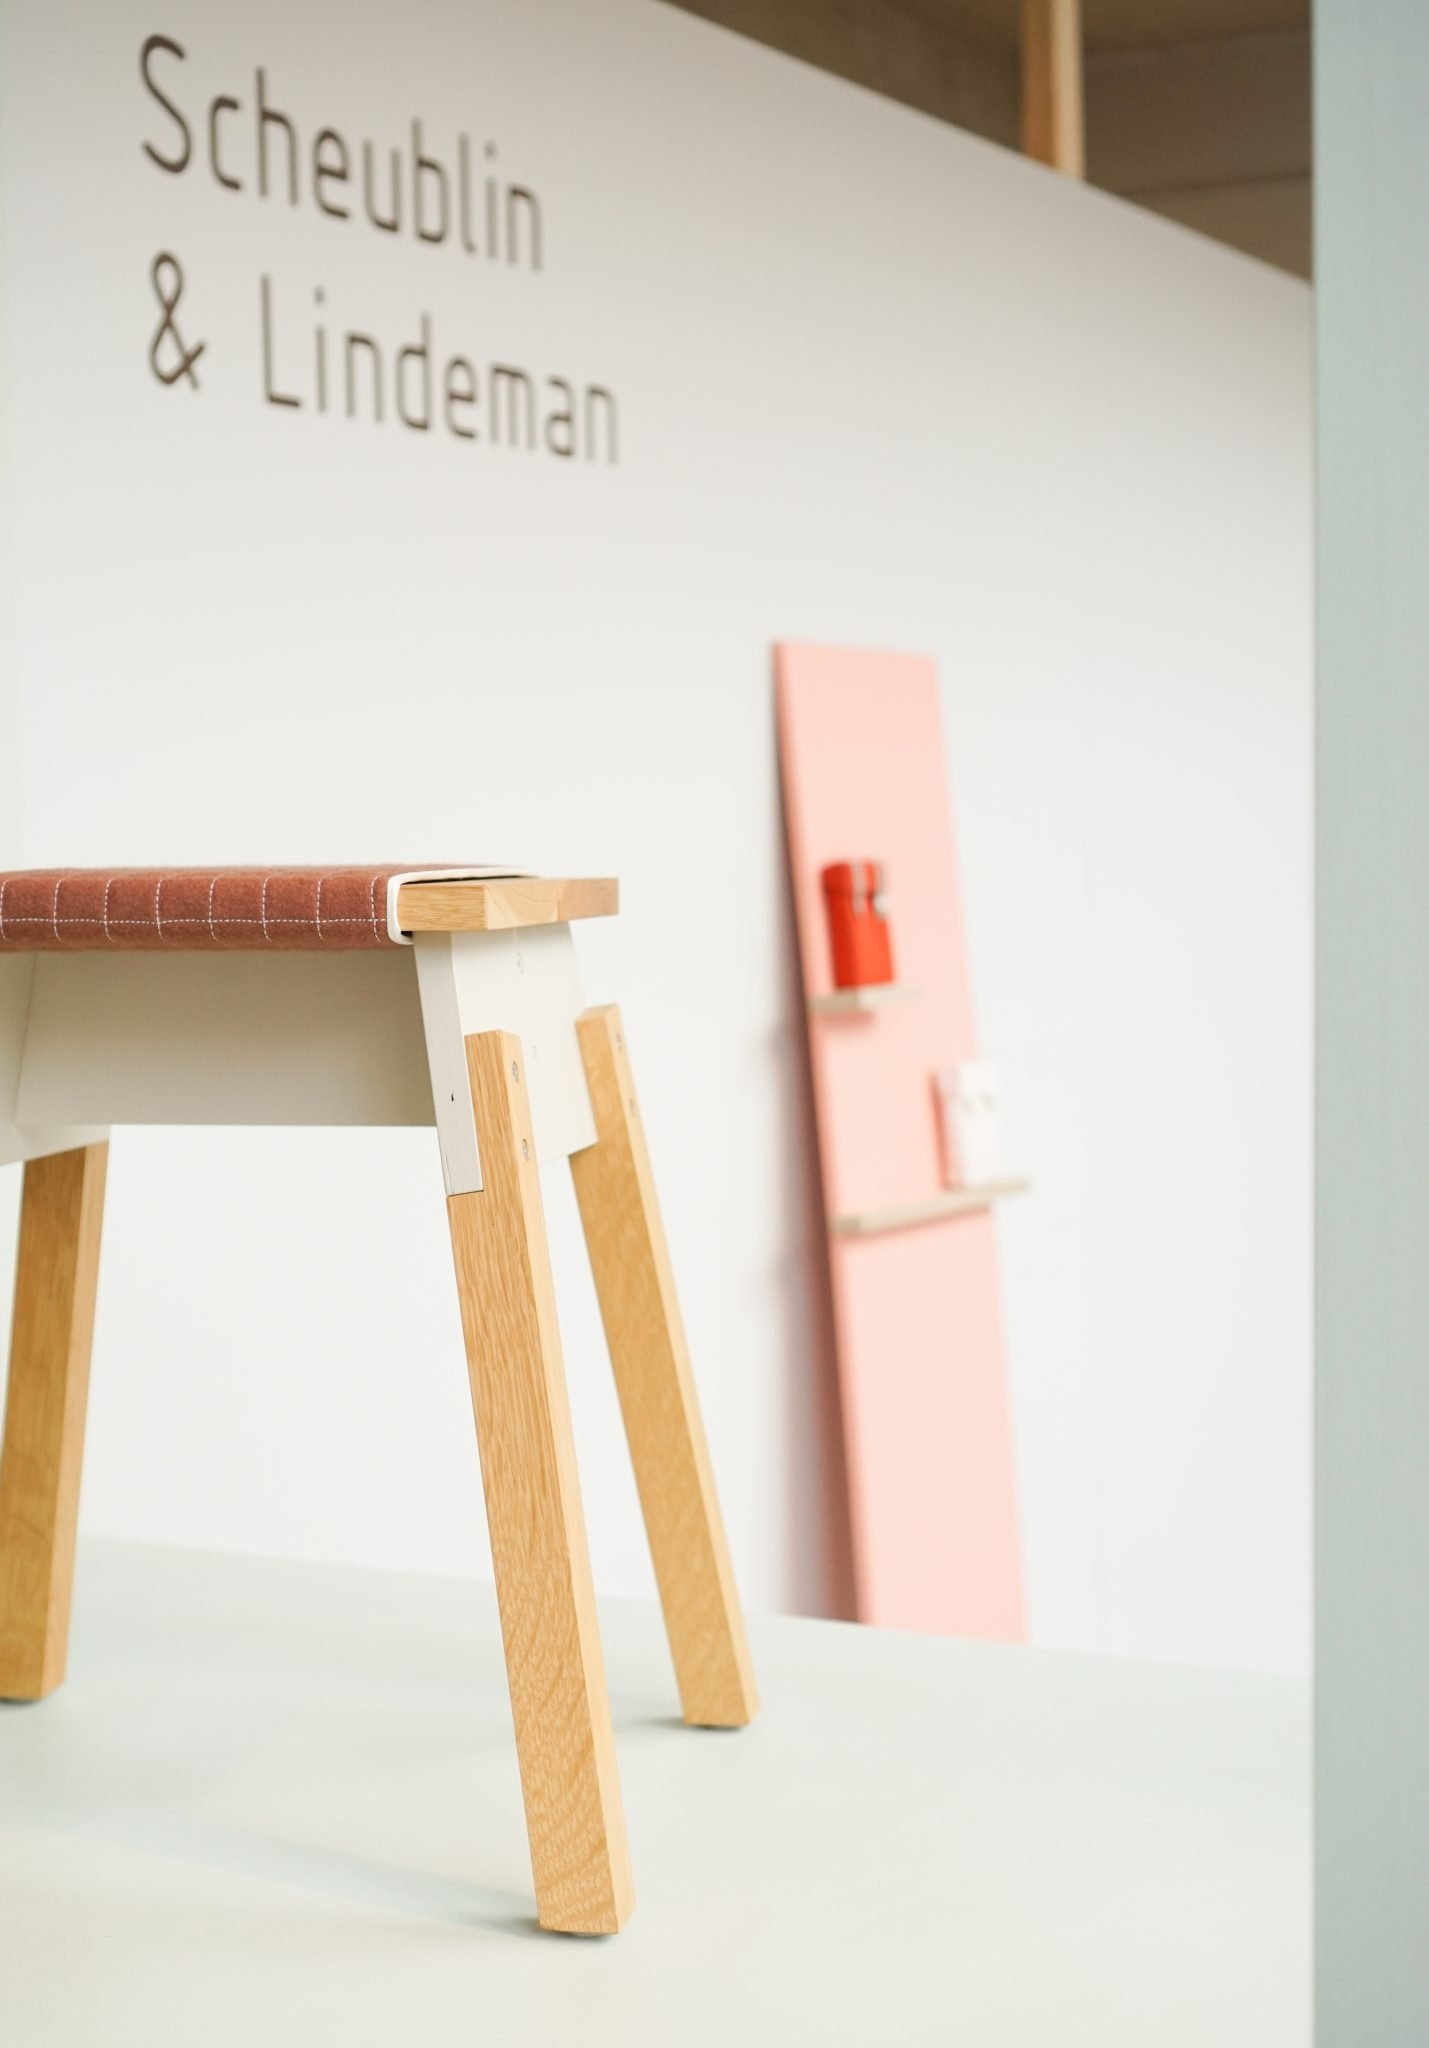 Dutch Design Week 2017 Scheublin & Lindeman